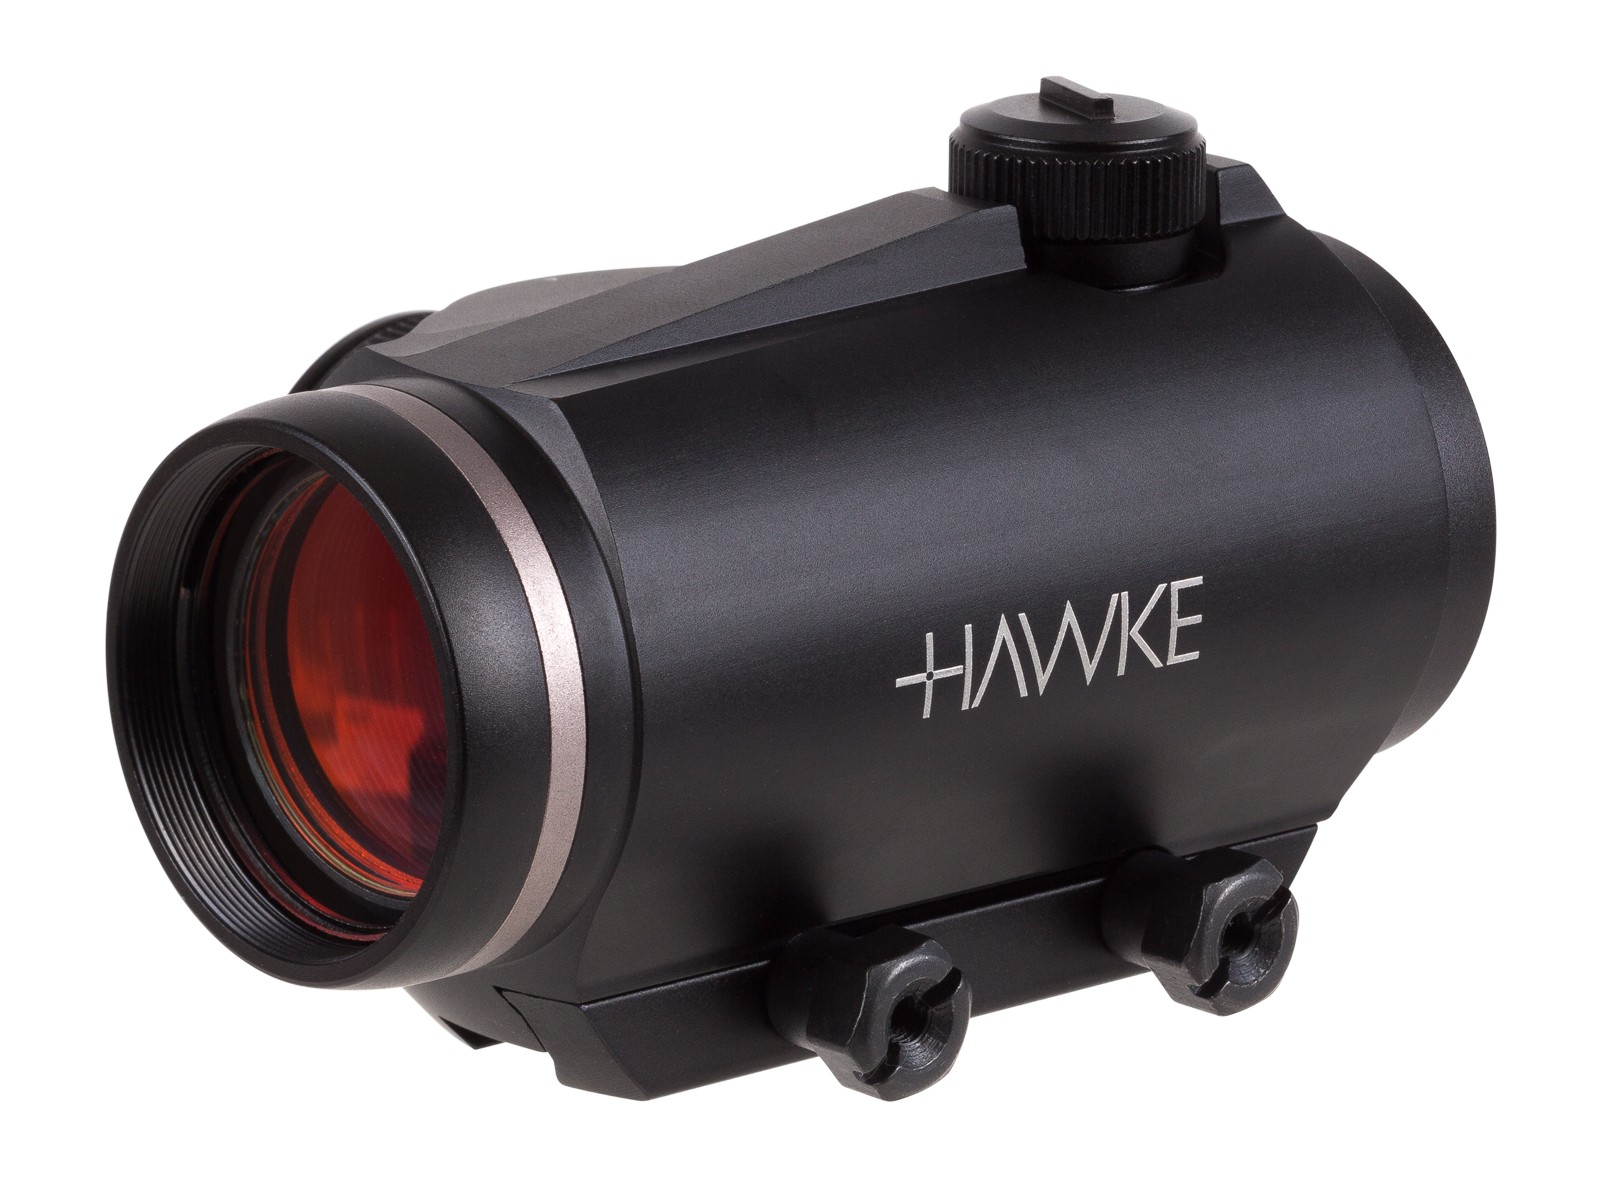 Hawke 1×30 Red Dot Sight Vantage RD, 9-11mm Dovetail, 3 MOA Dot